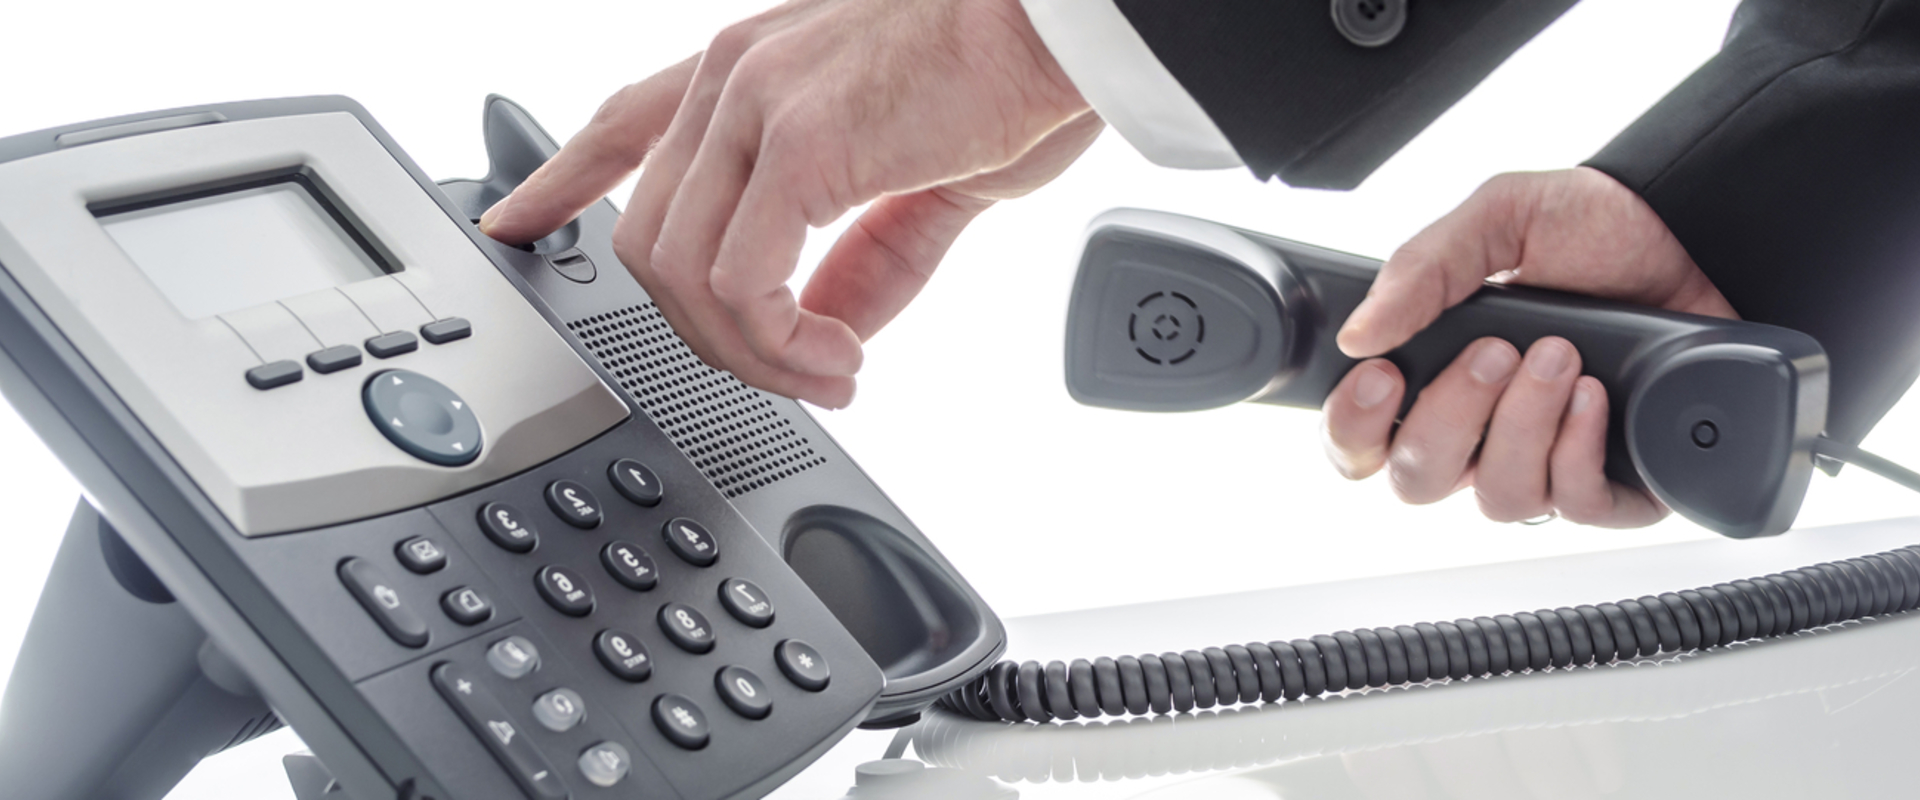 where can you use your voip phone?